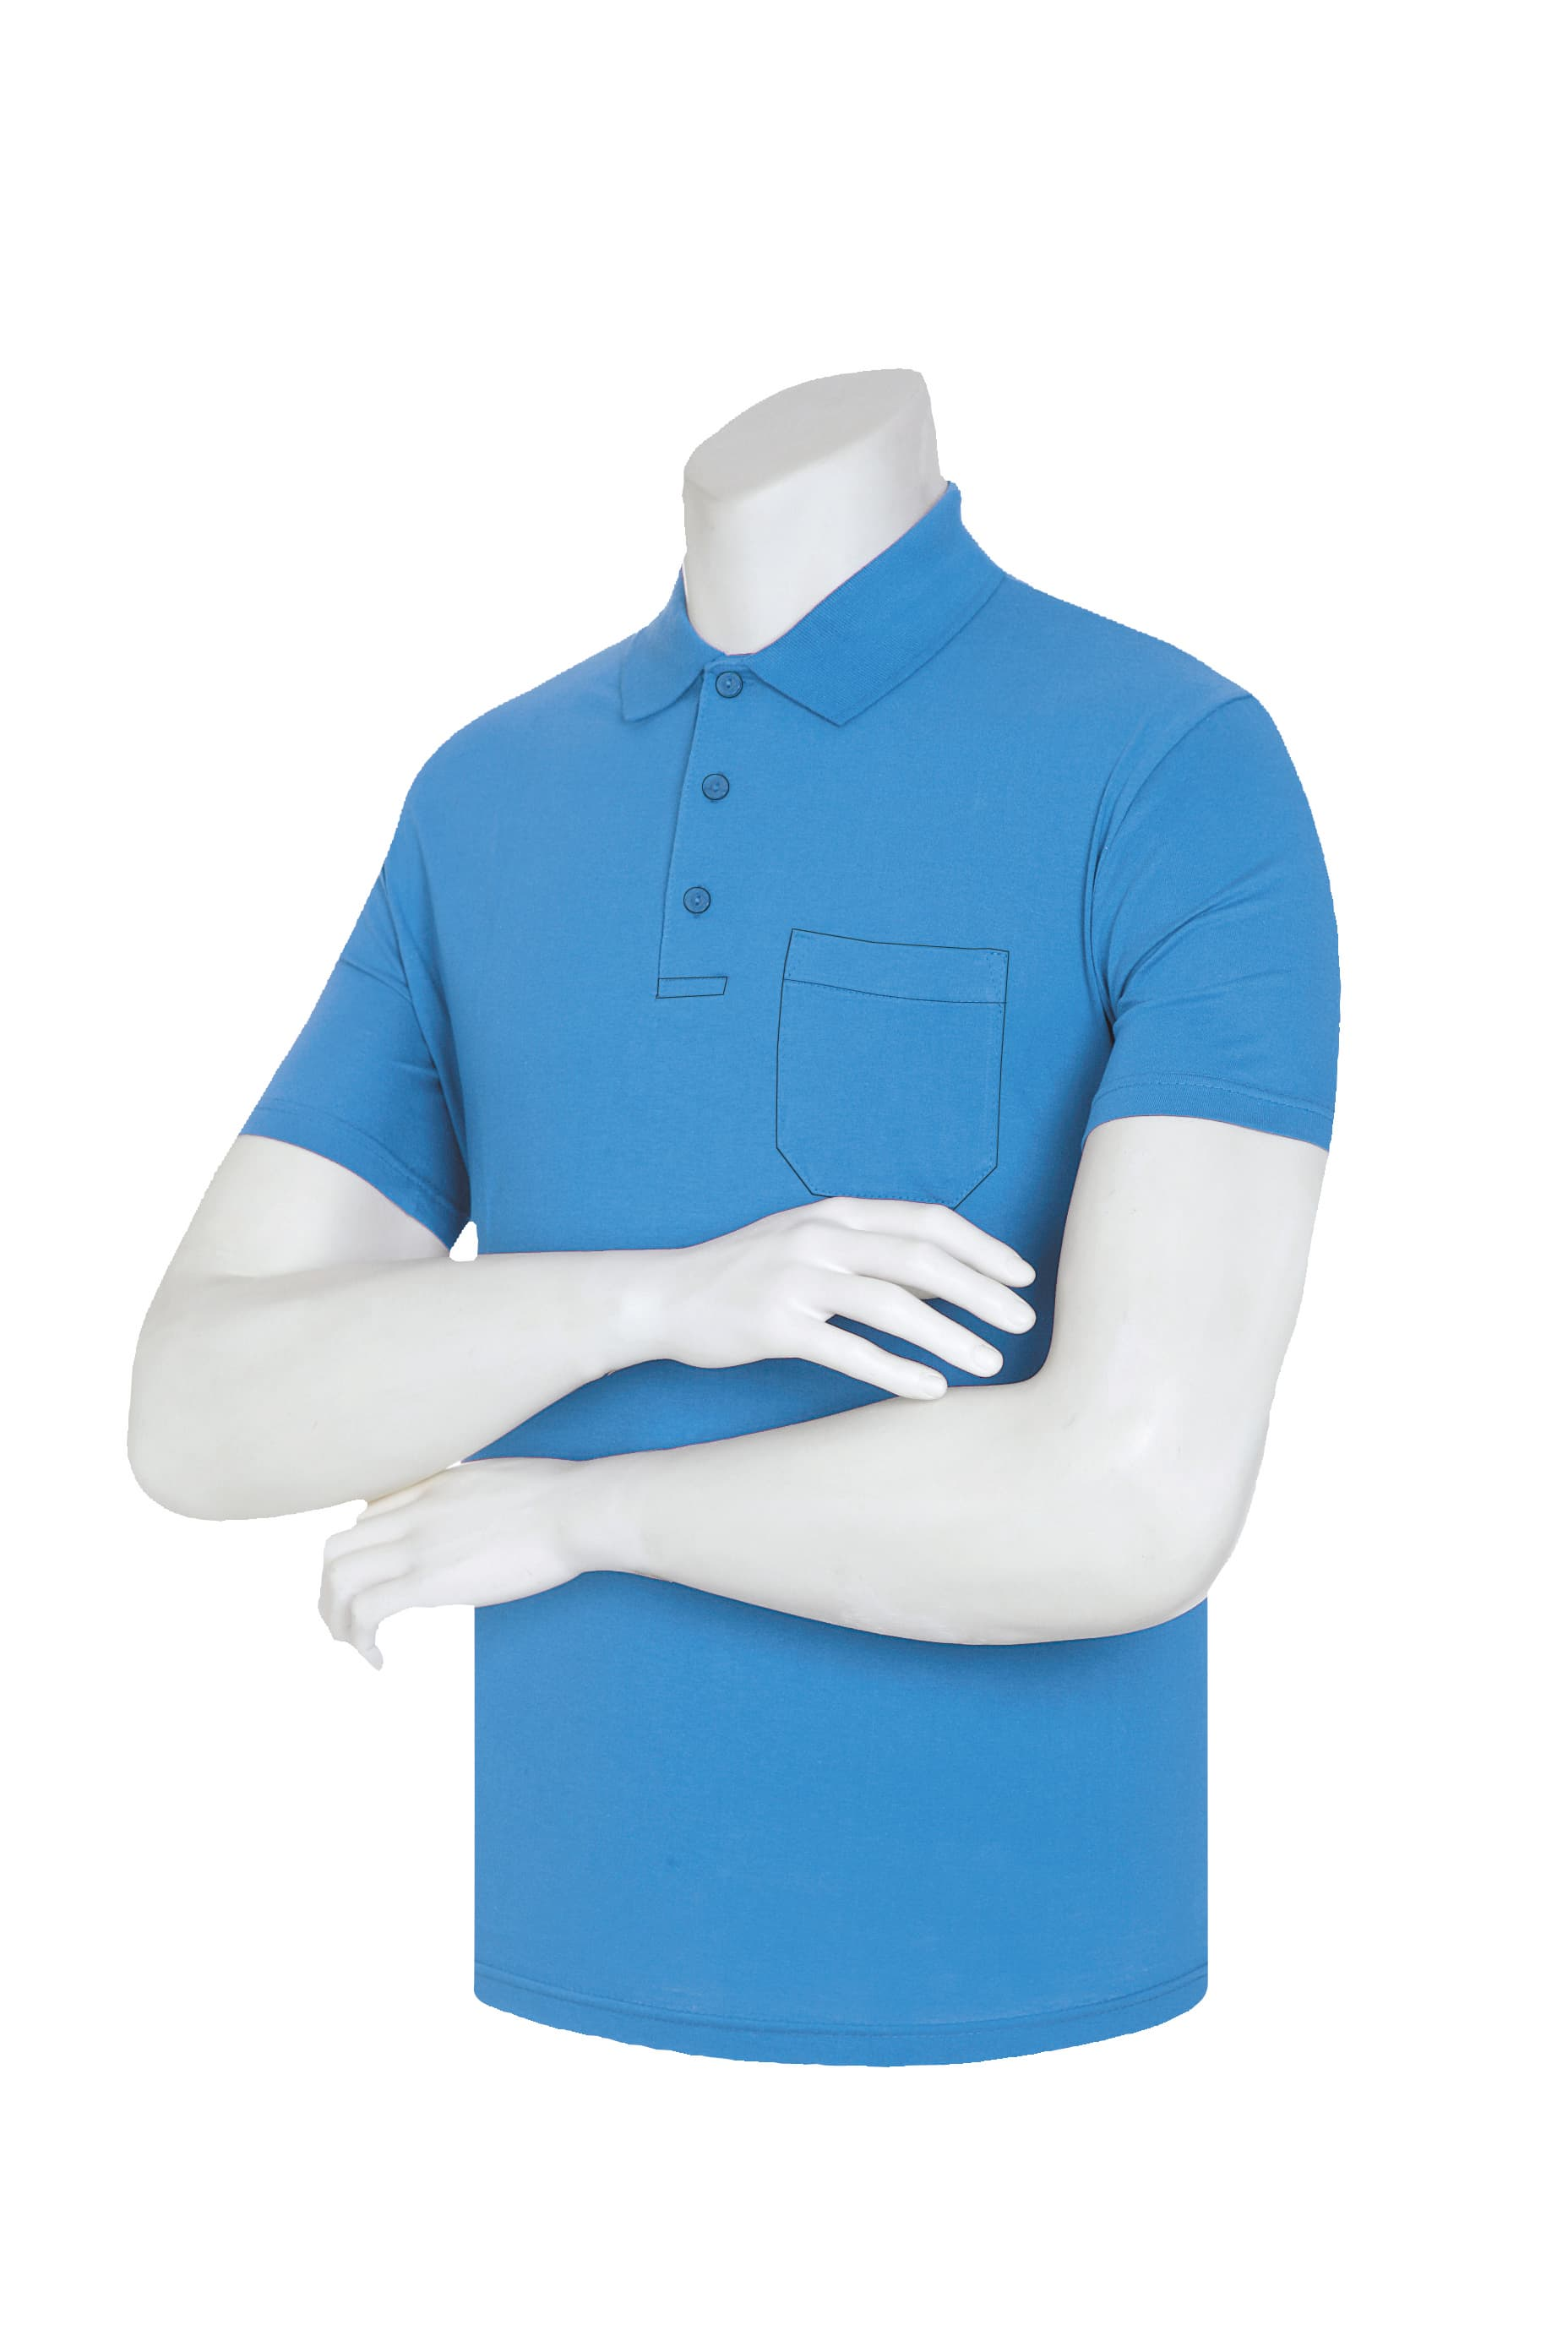 Polo Shirt_ T Shirt_ 220GSM_ Coolar T shirt_ pique_ fabric